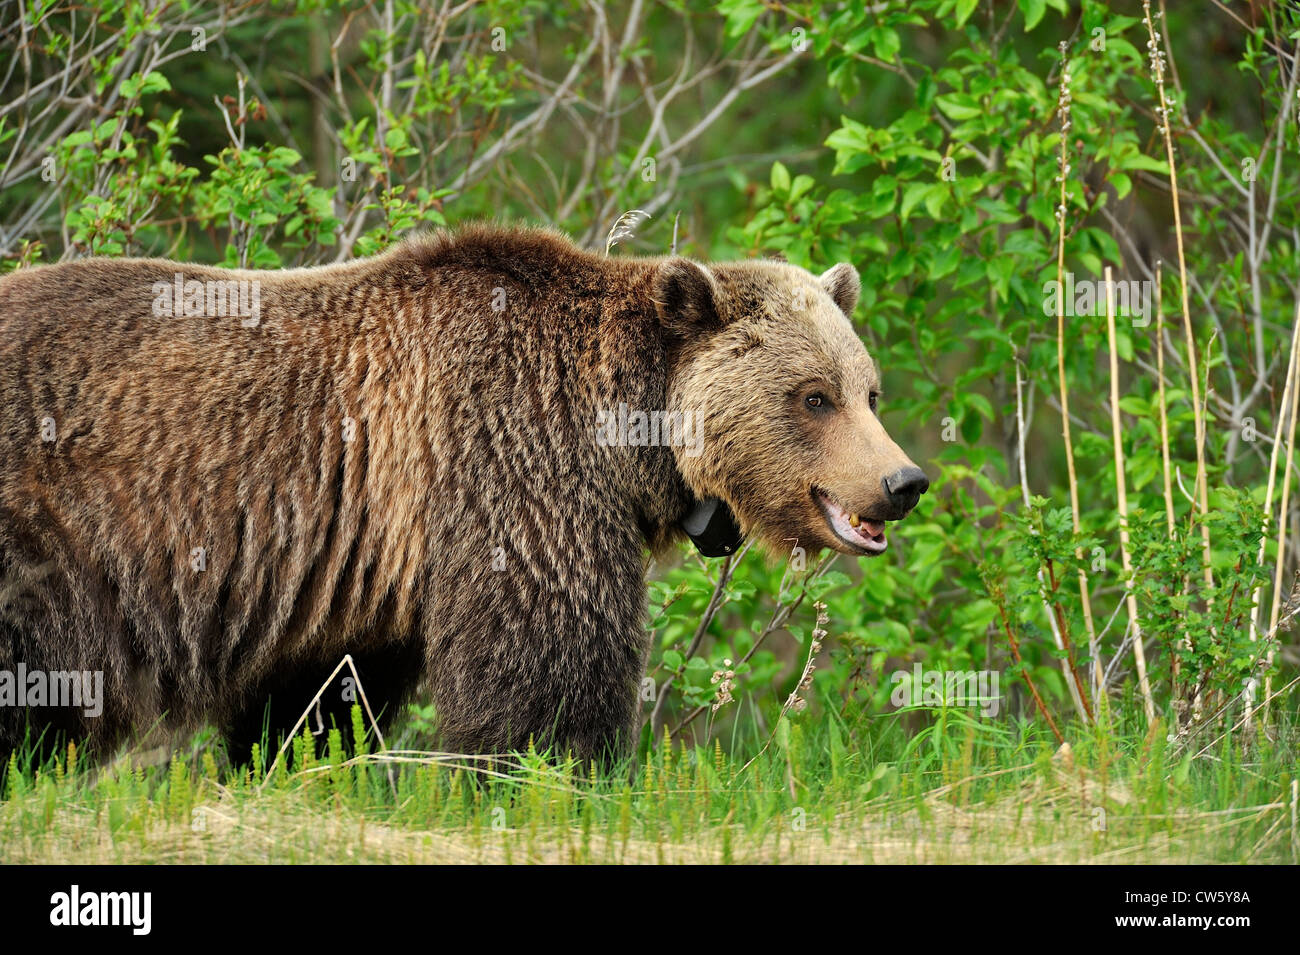 Grizzly bear side profile